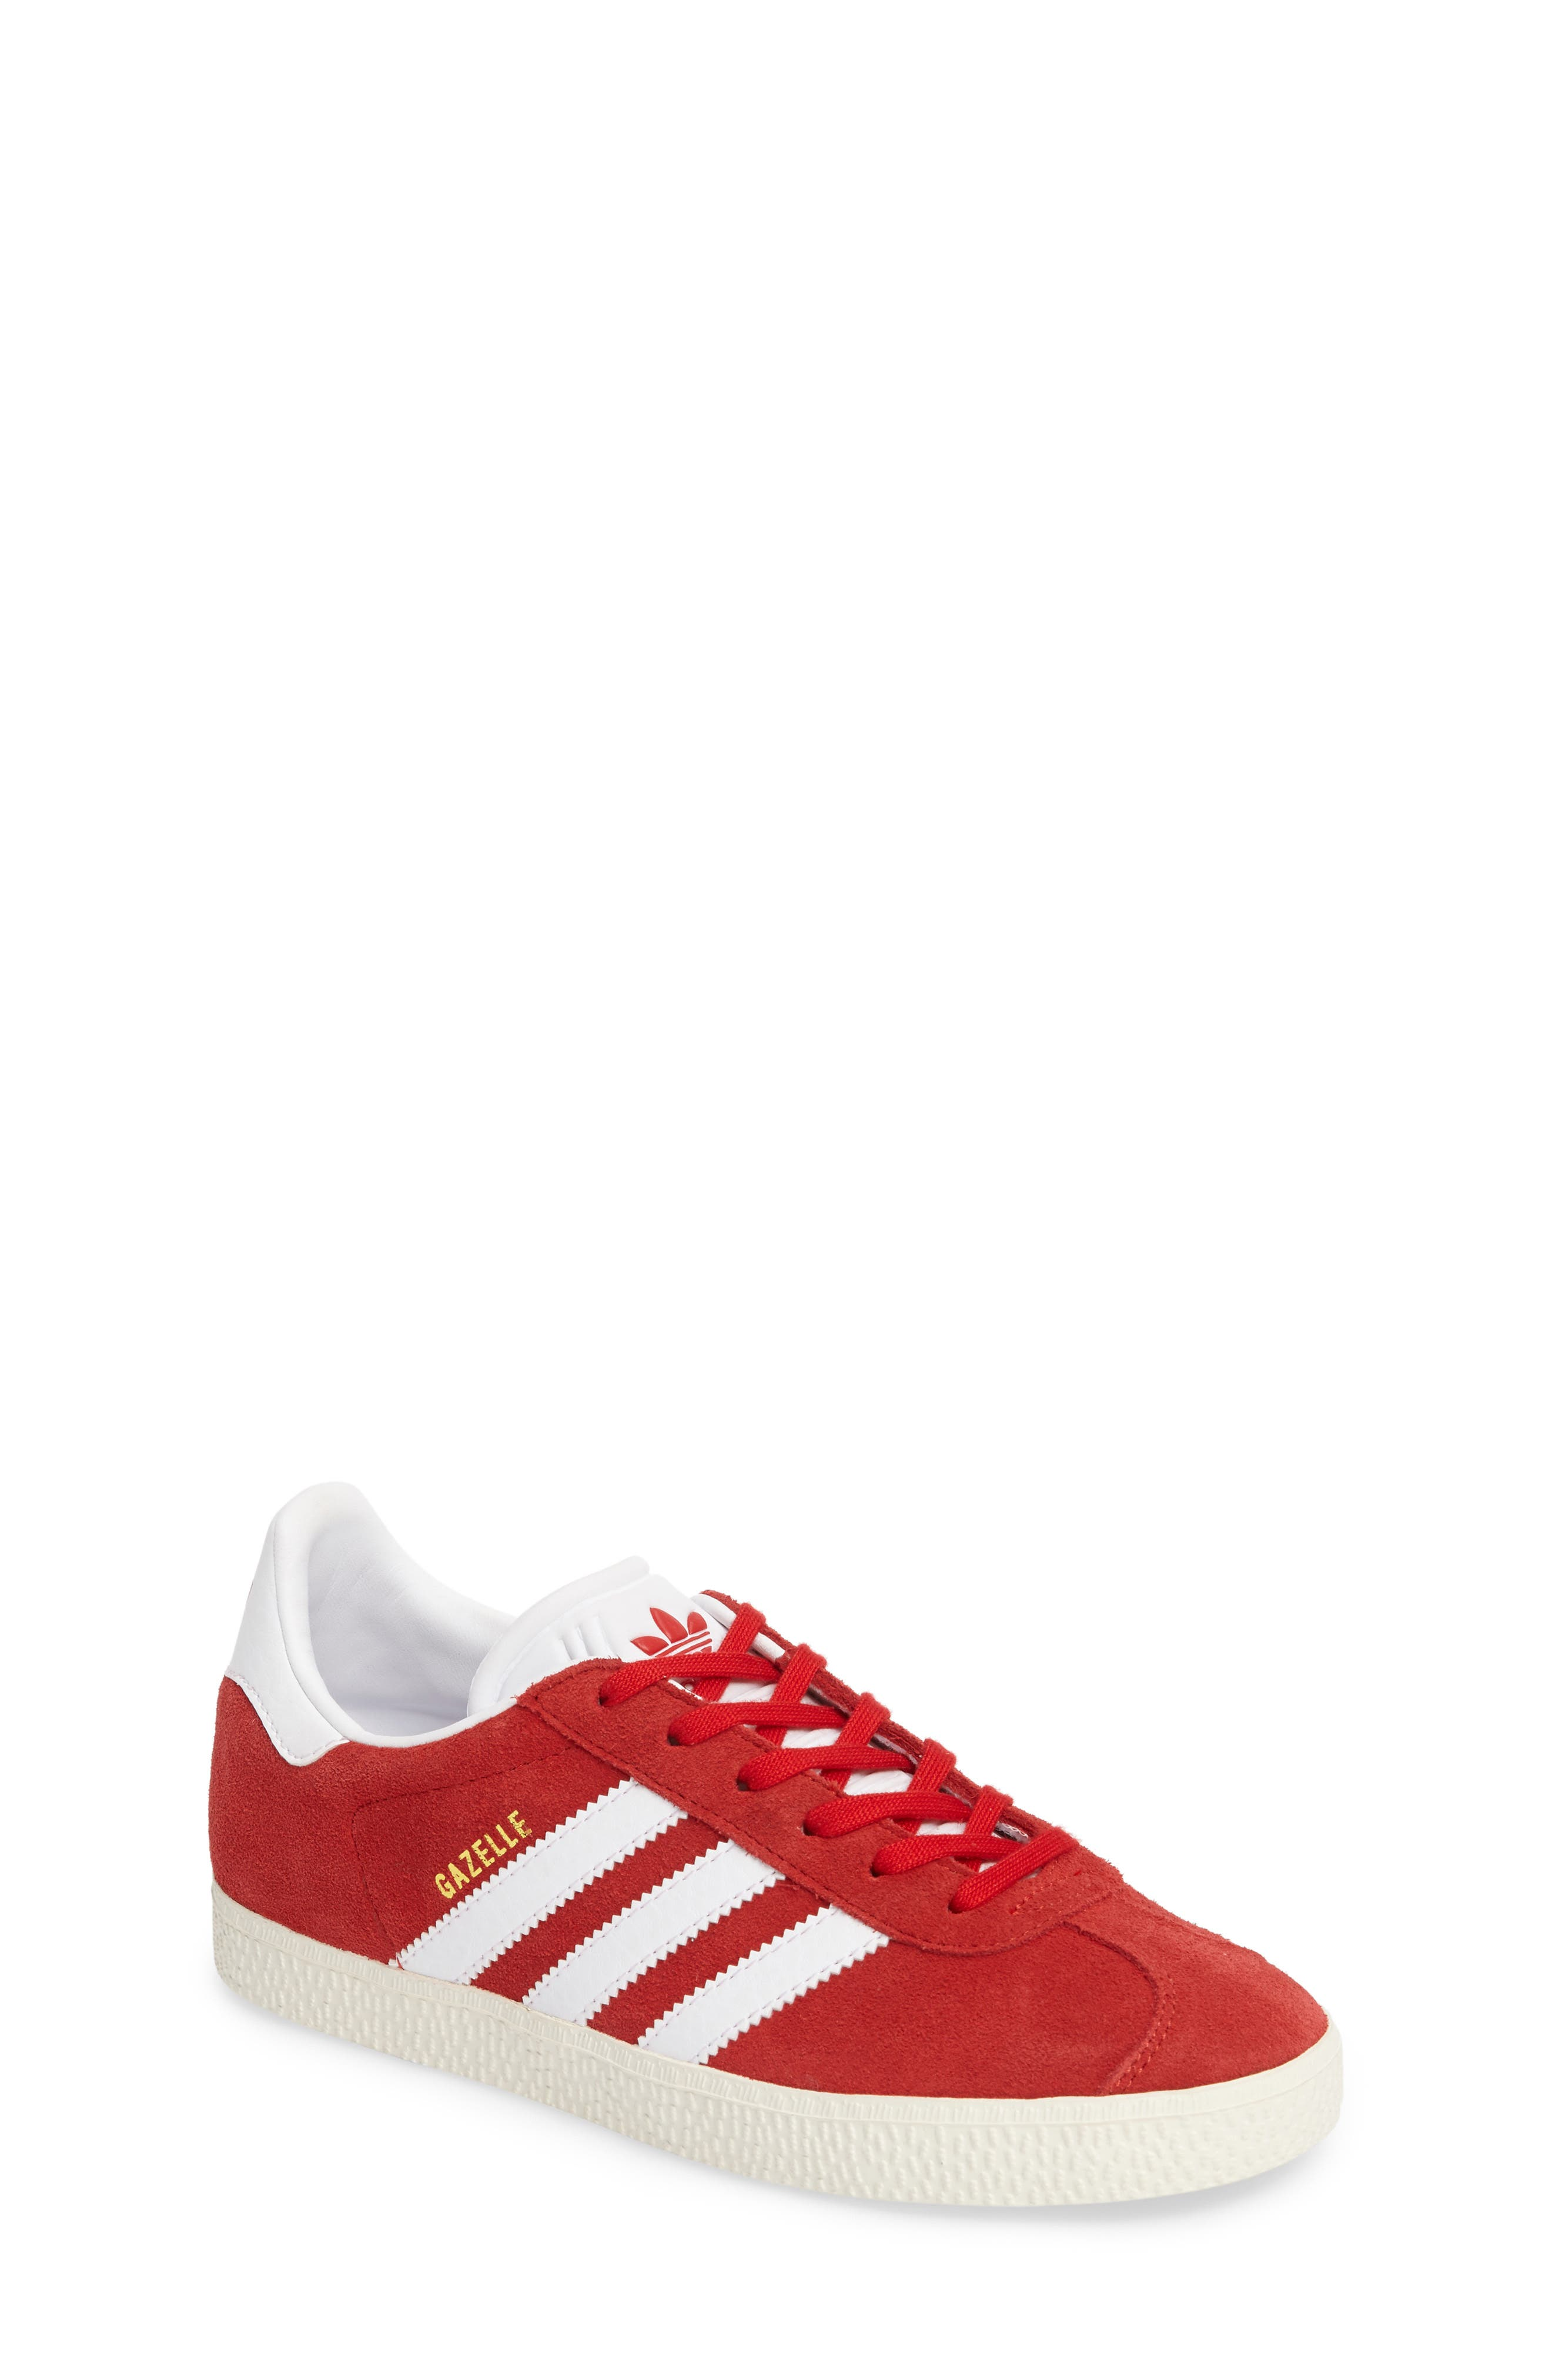 Alternate Image 1 Selected - adidas Gazelle Sneaker (Toddler & Little Kid)